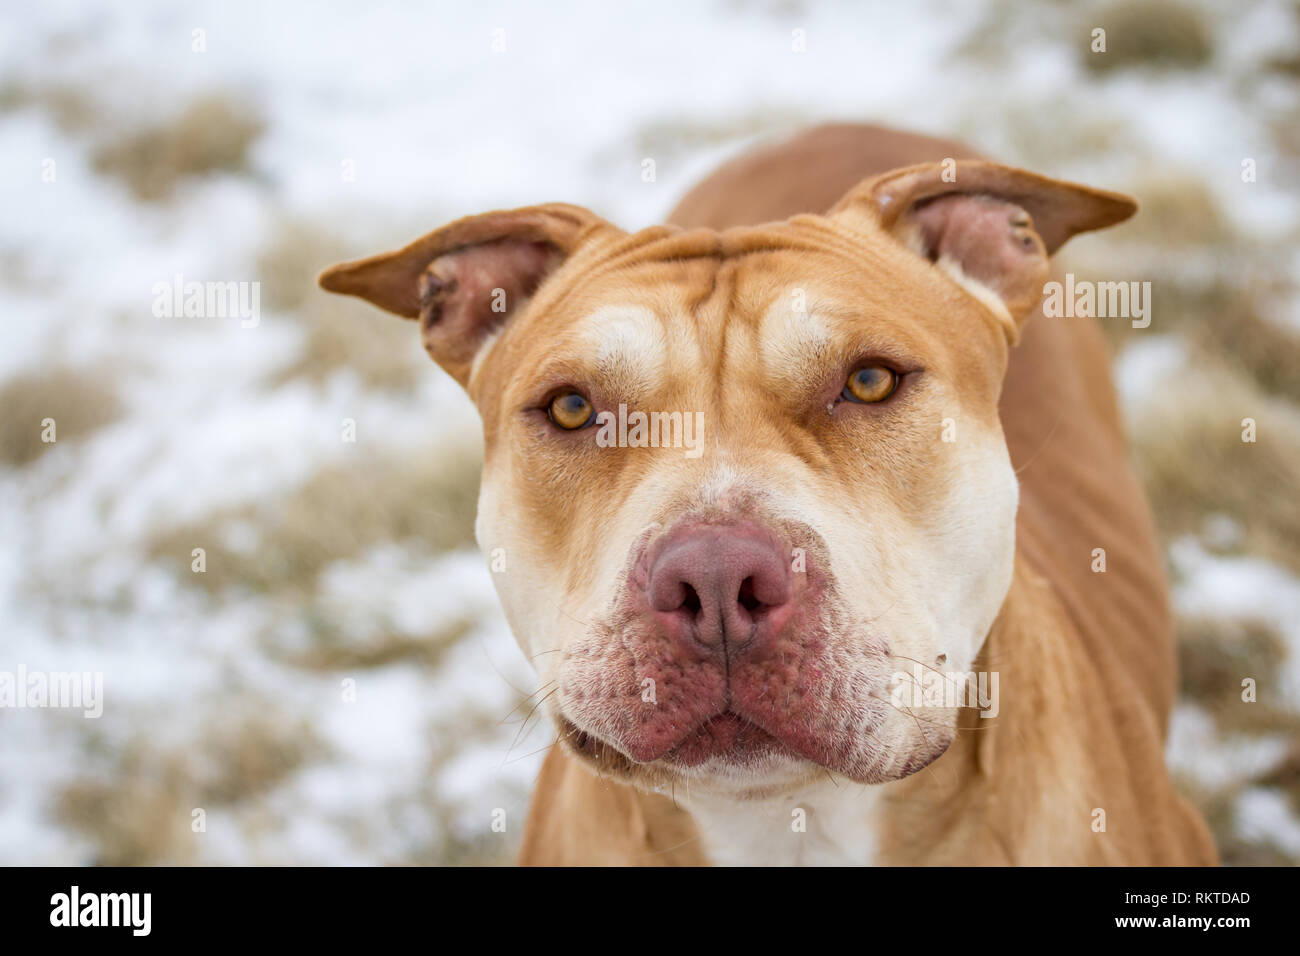 American Bully Stock Photos American Bully Stock Images Alamy